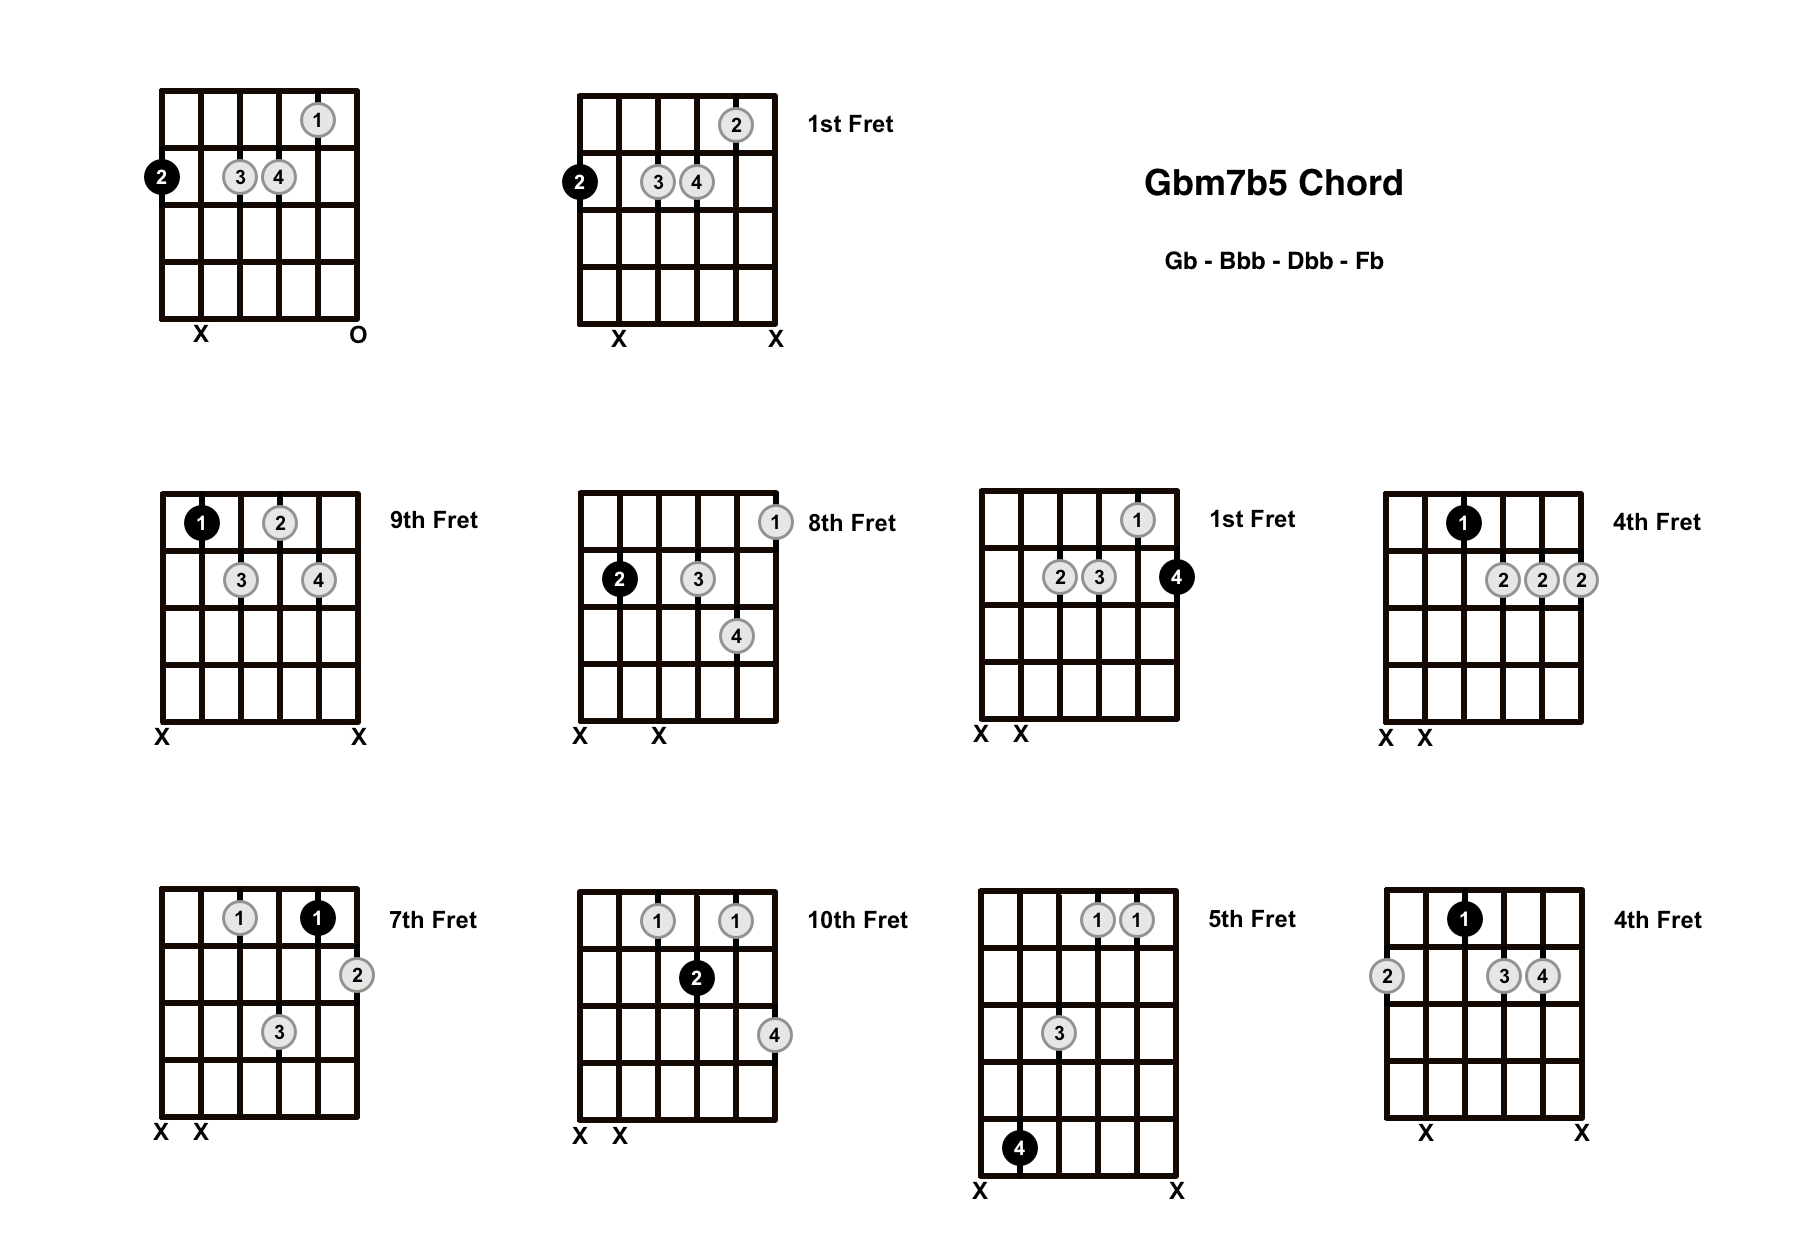 Gbm7b5 Chord On The Guitar (G Flat Minor 7 Flat 5, G Flat Half Diminished) – Diagrams, Finger Positions and Theory